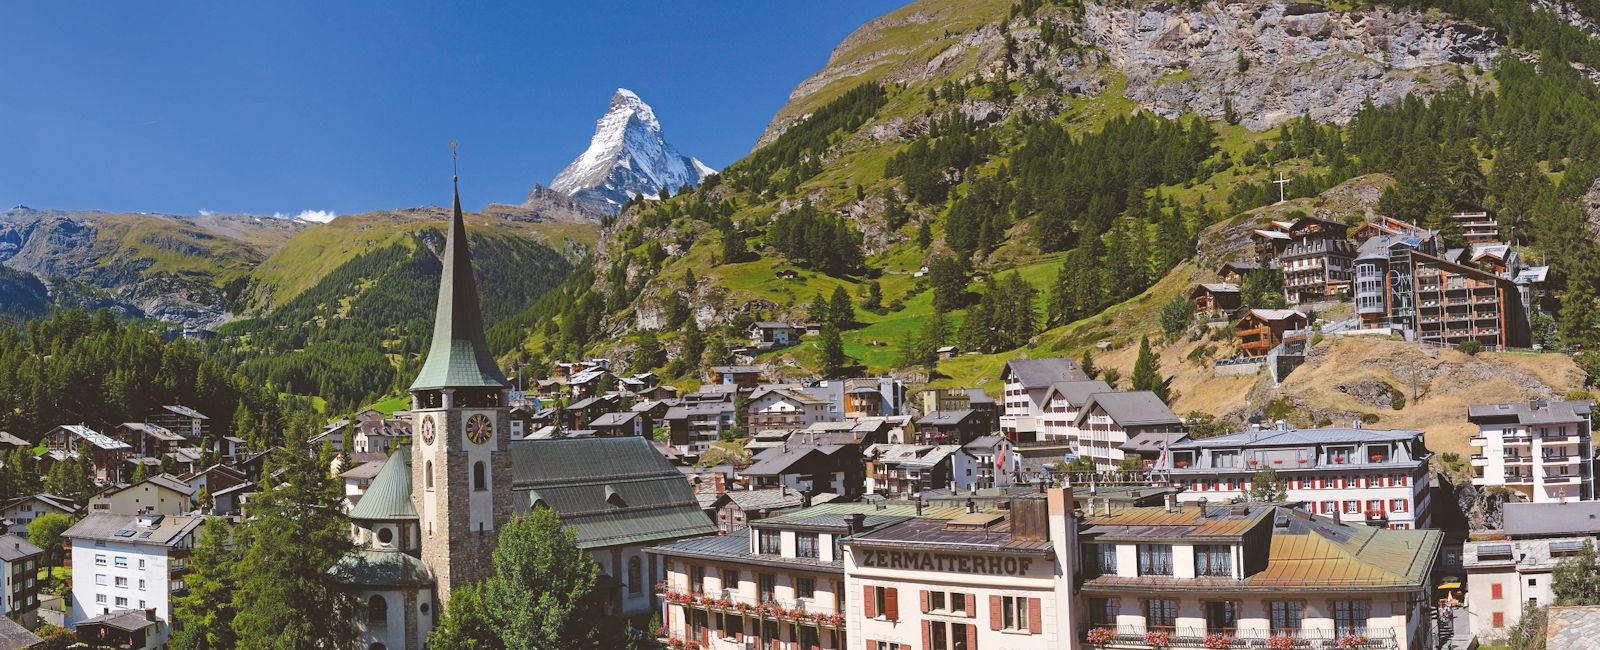 Luxury Zermatt holidays